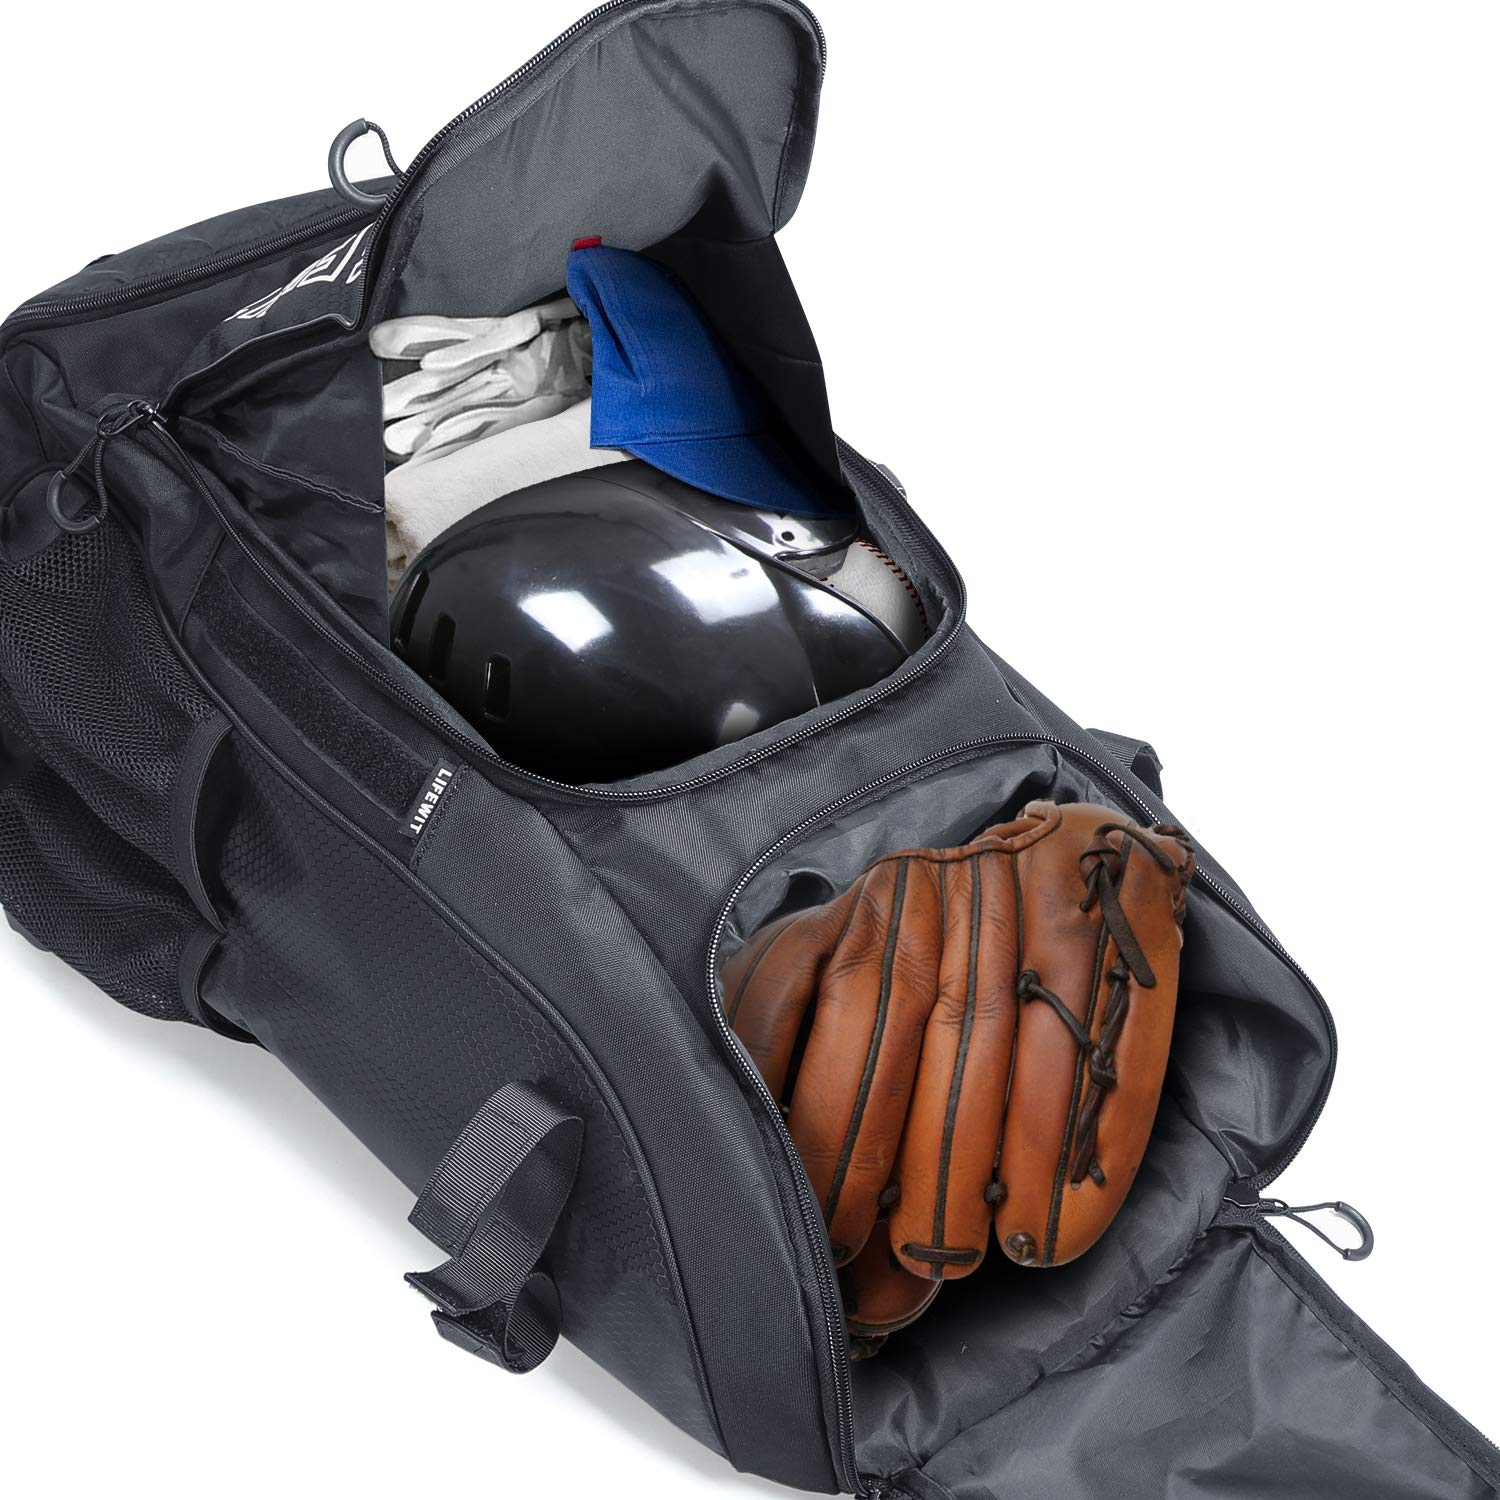 Lifewit Large Baseball Bat Backpack,Youth Softball Bag, T-Ball Equipment & Gear for Mens Adults - Fits 4 Bats, Helmet, Glove - Vented Shoes Compartment, Fence Hook by Lifewit (Image #2)